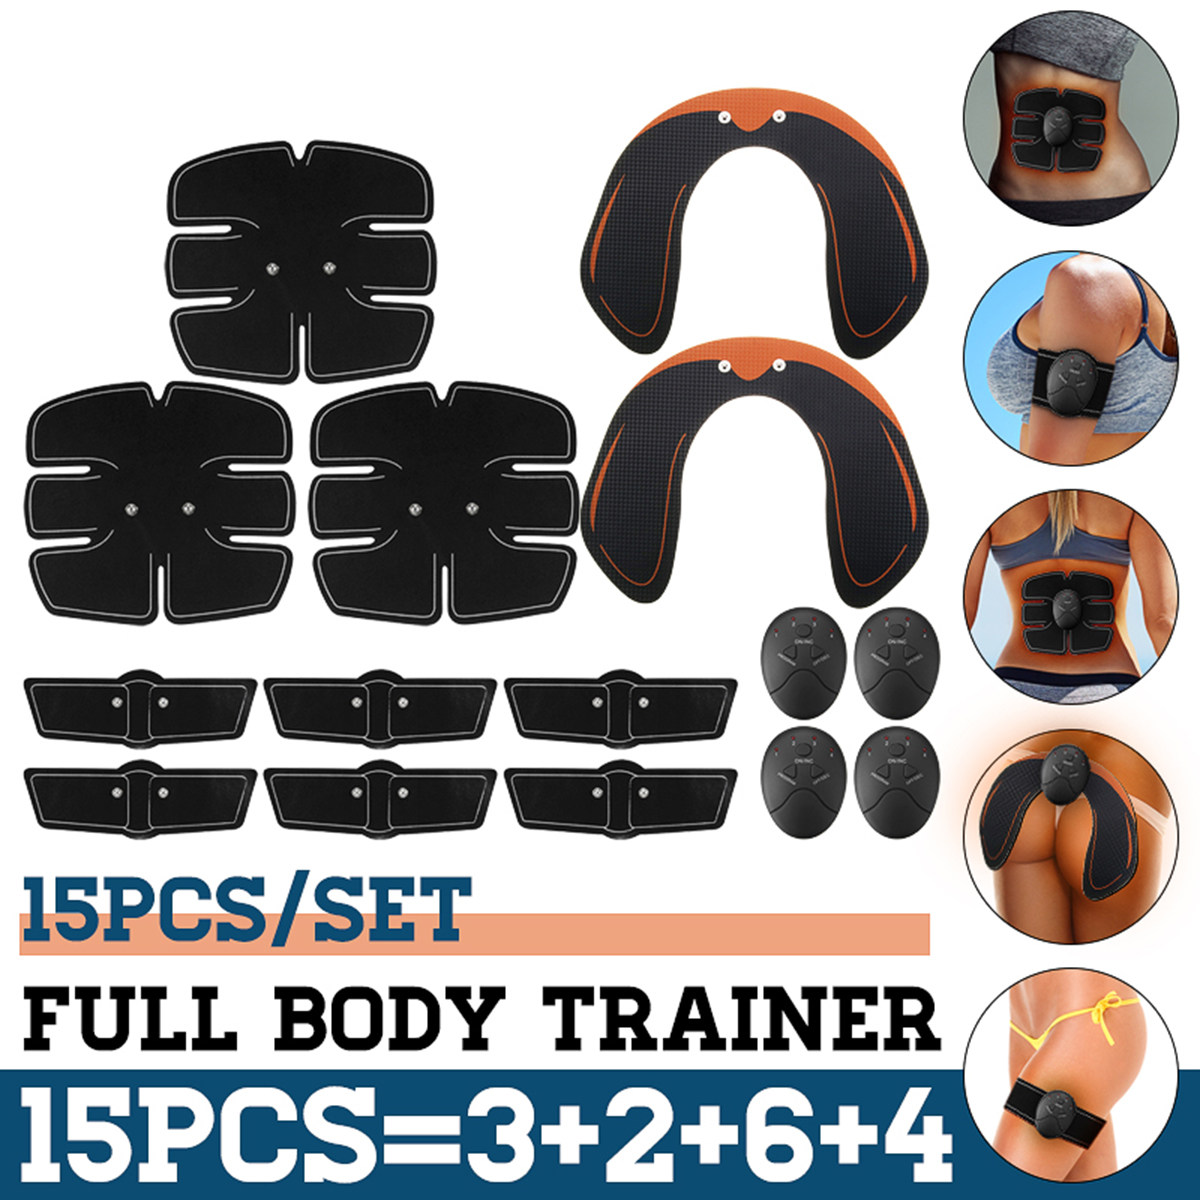 15PCS/Set EMS Muscle Abdominal Trainer Smart Wireless Muscle ABS Hip Abdominal Muscle Stimulator Massage Set Weight Loss